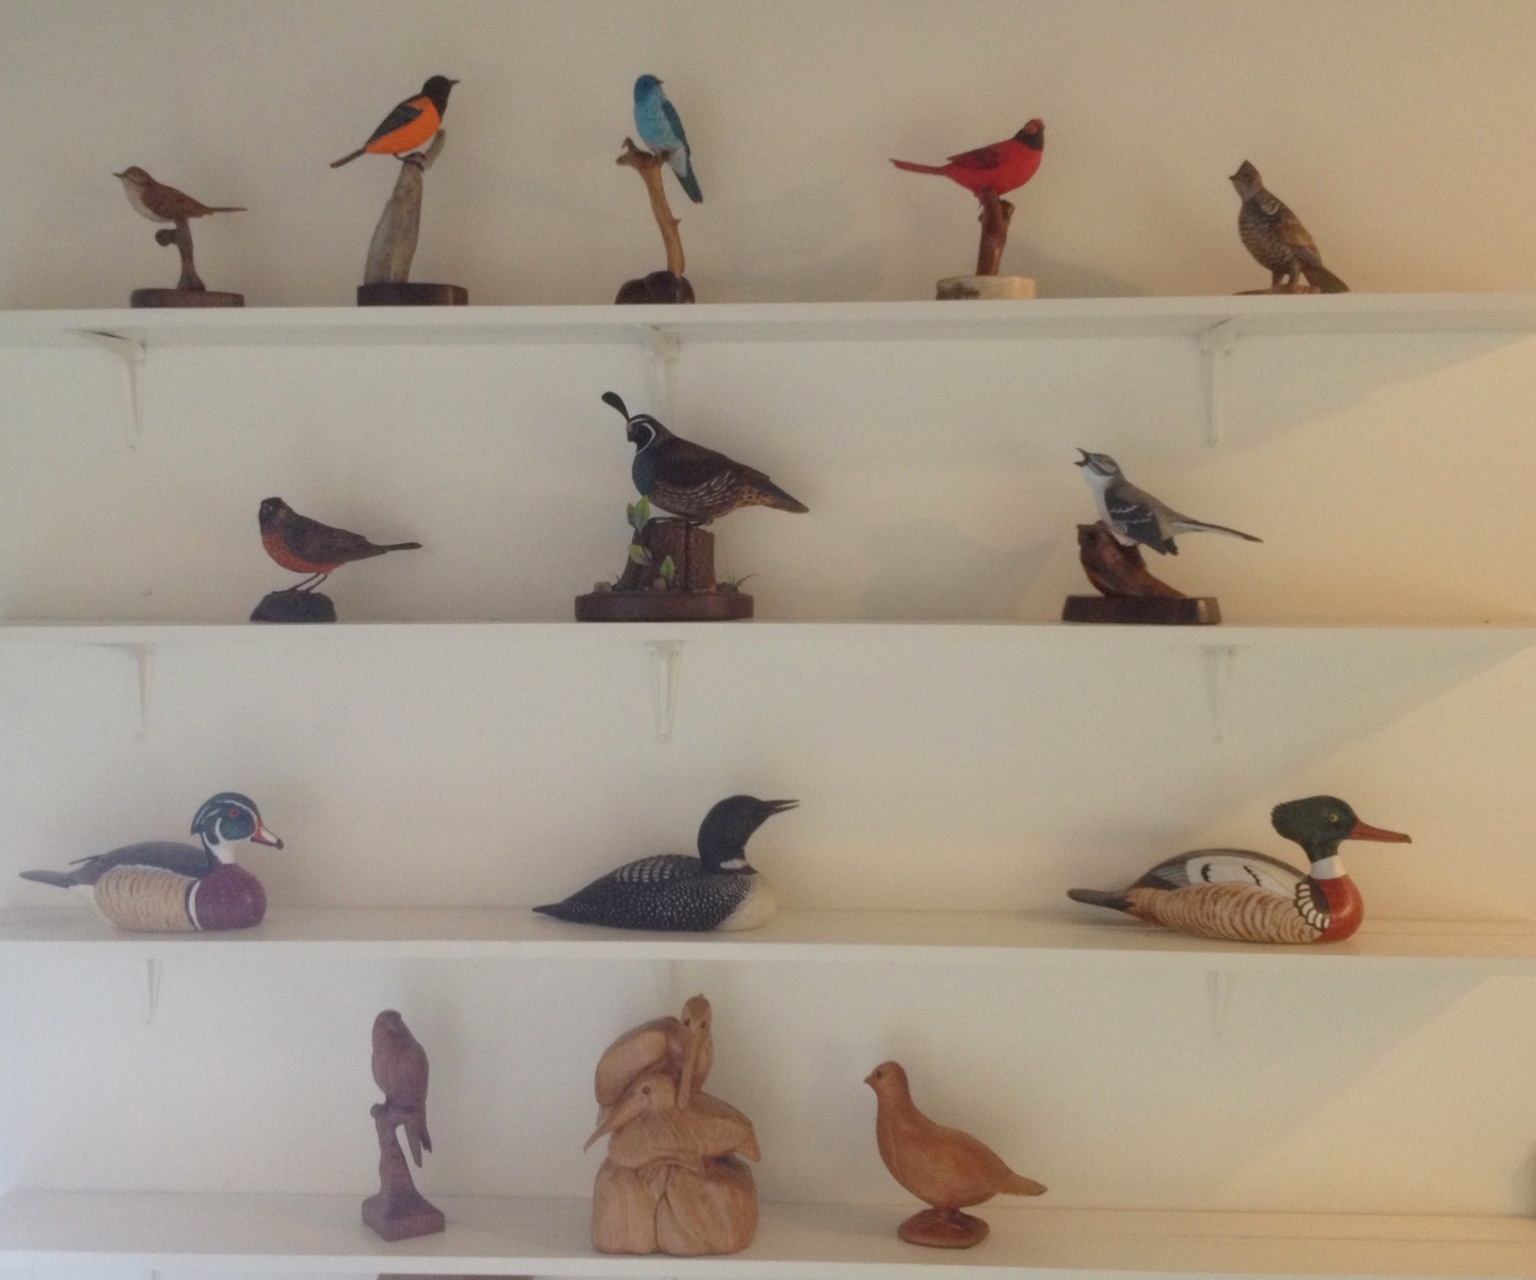 Carvings by Peter Padua on Exhibit at the Birds of Vermont Museum in Huntington, Vermont